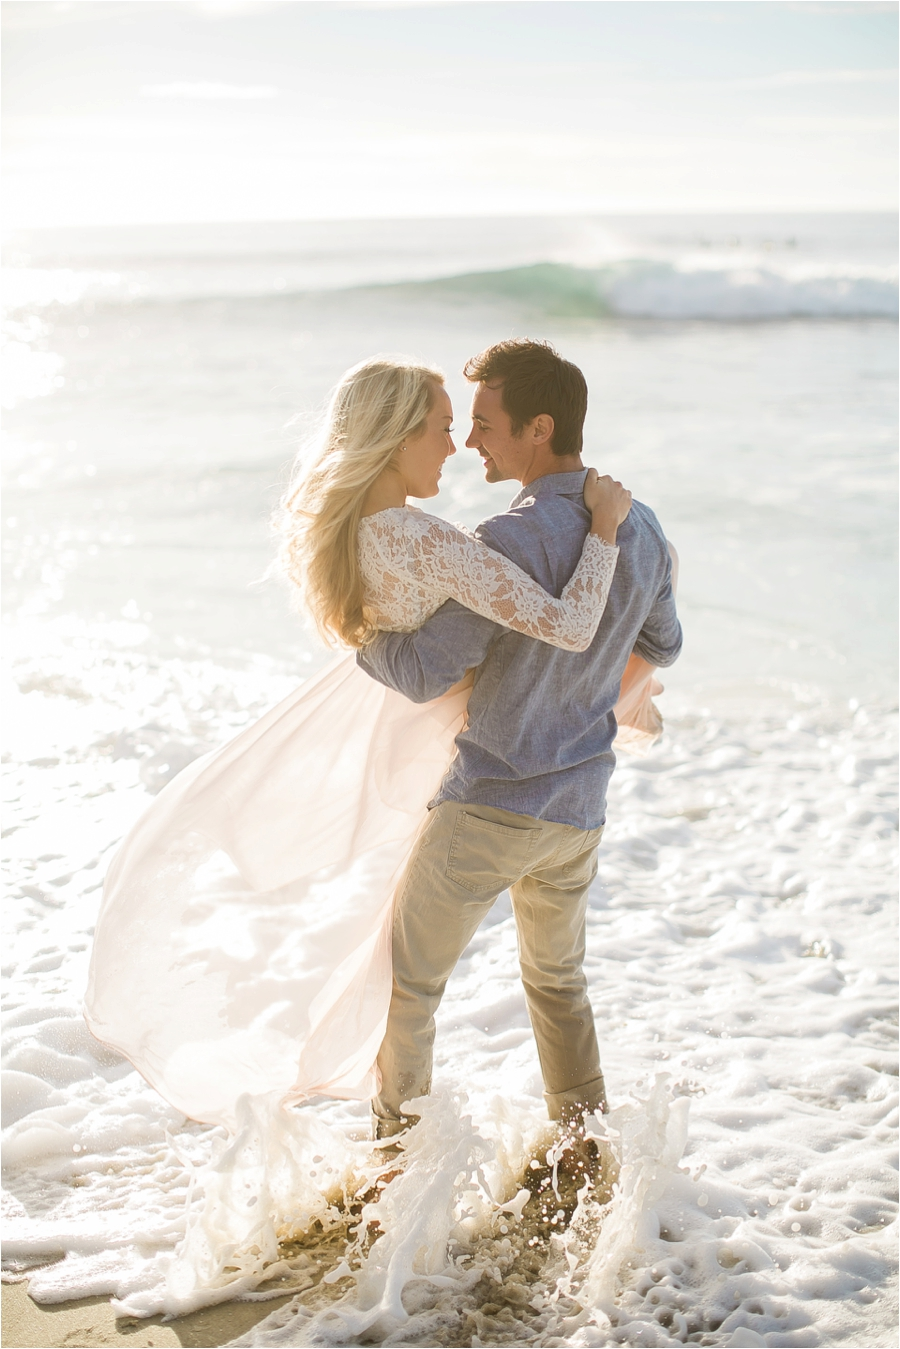 Here's a photo from a recent engagement session I did on the beach. Most of the time I end up knee deep in the ocean trying to get an awesome shot. When the waves washed up during this moment, I took the shot and then immediately lifted my camera above my head and pointed the lens towards the sky to avoid the lens getting splashed.